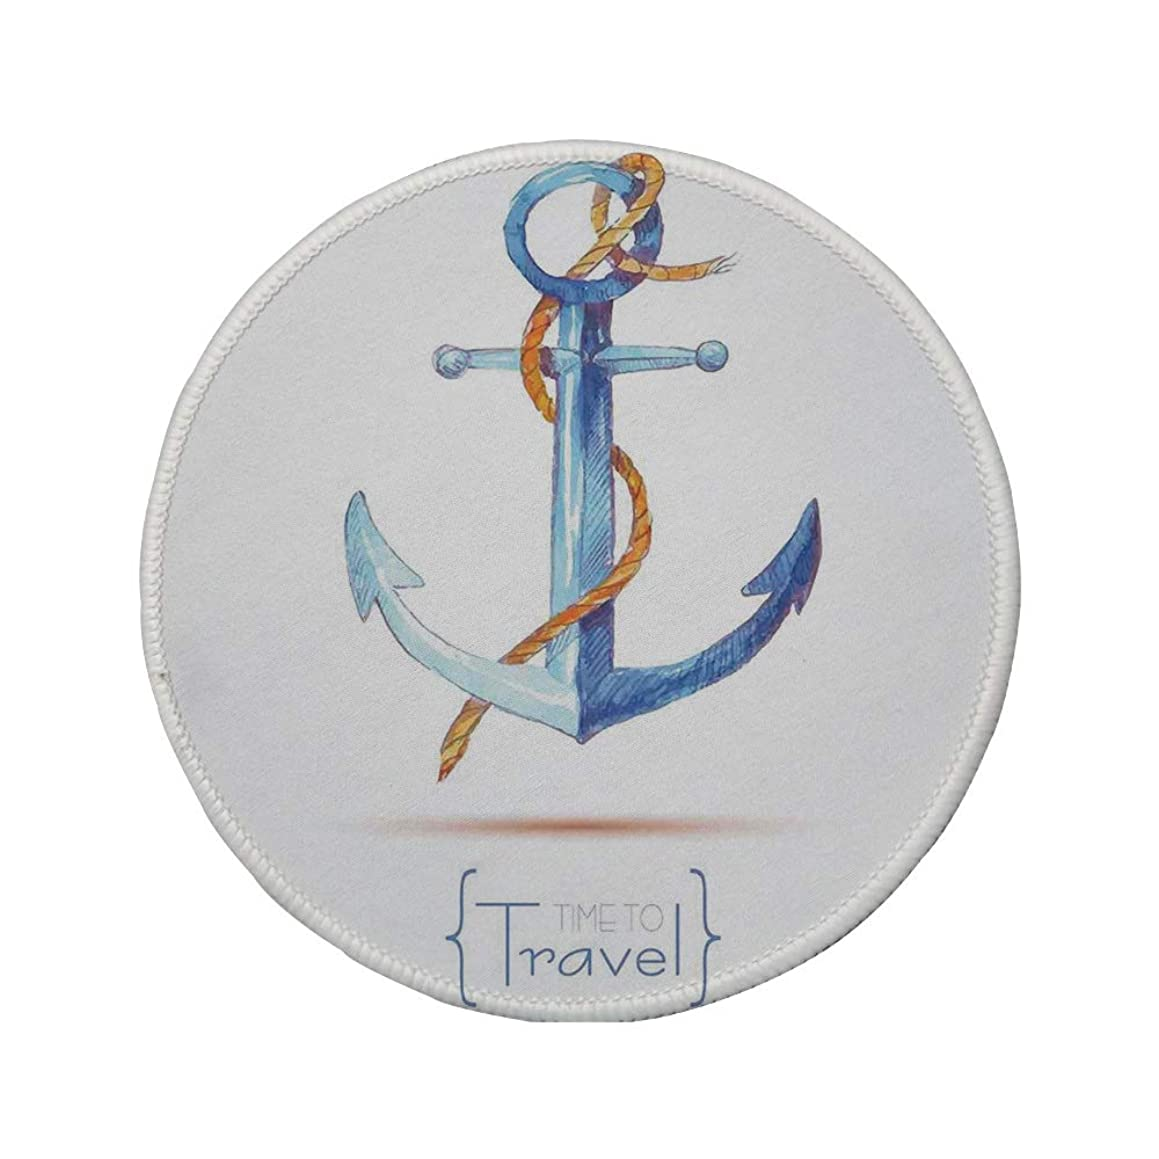 Non-Slip Rubber Round Mouse Pad,Anchor Decor,Watercolors Anchor Rope Time to Travel Naval Classic Sail Emblem Drogue Voyage,Blue White Brown,11.8